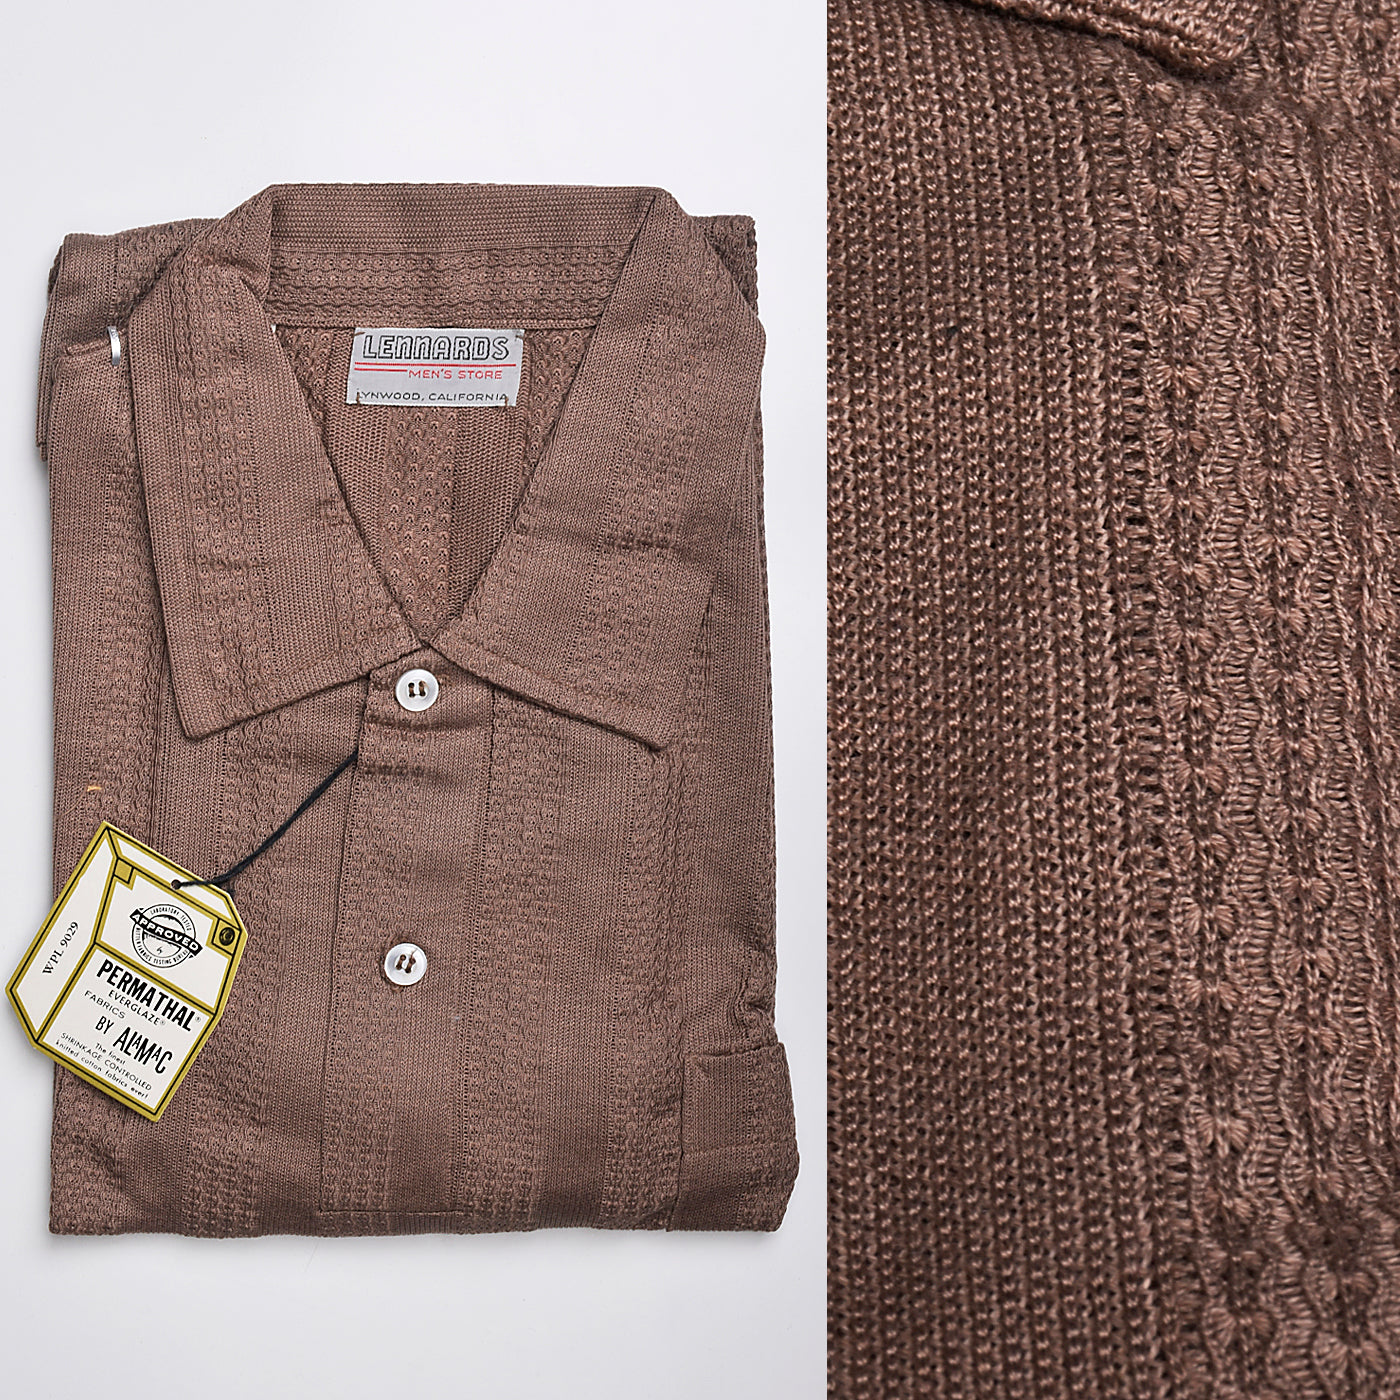 1950s Lennards Brown Knit Pull Over Shirt Deadstock